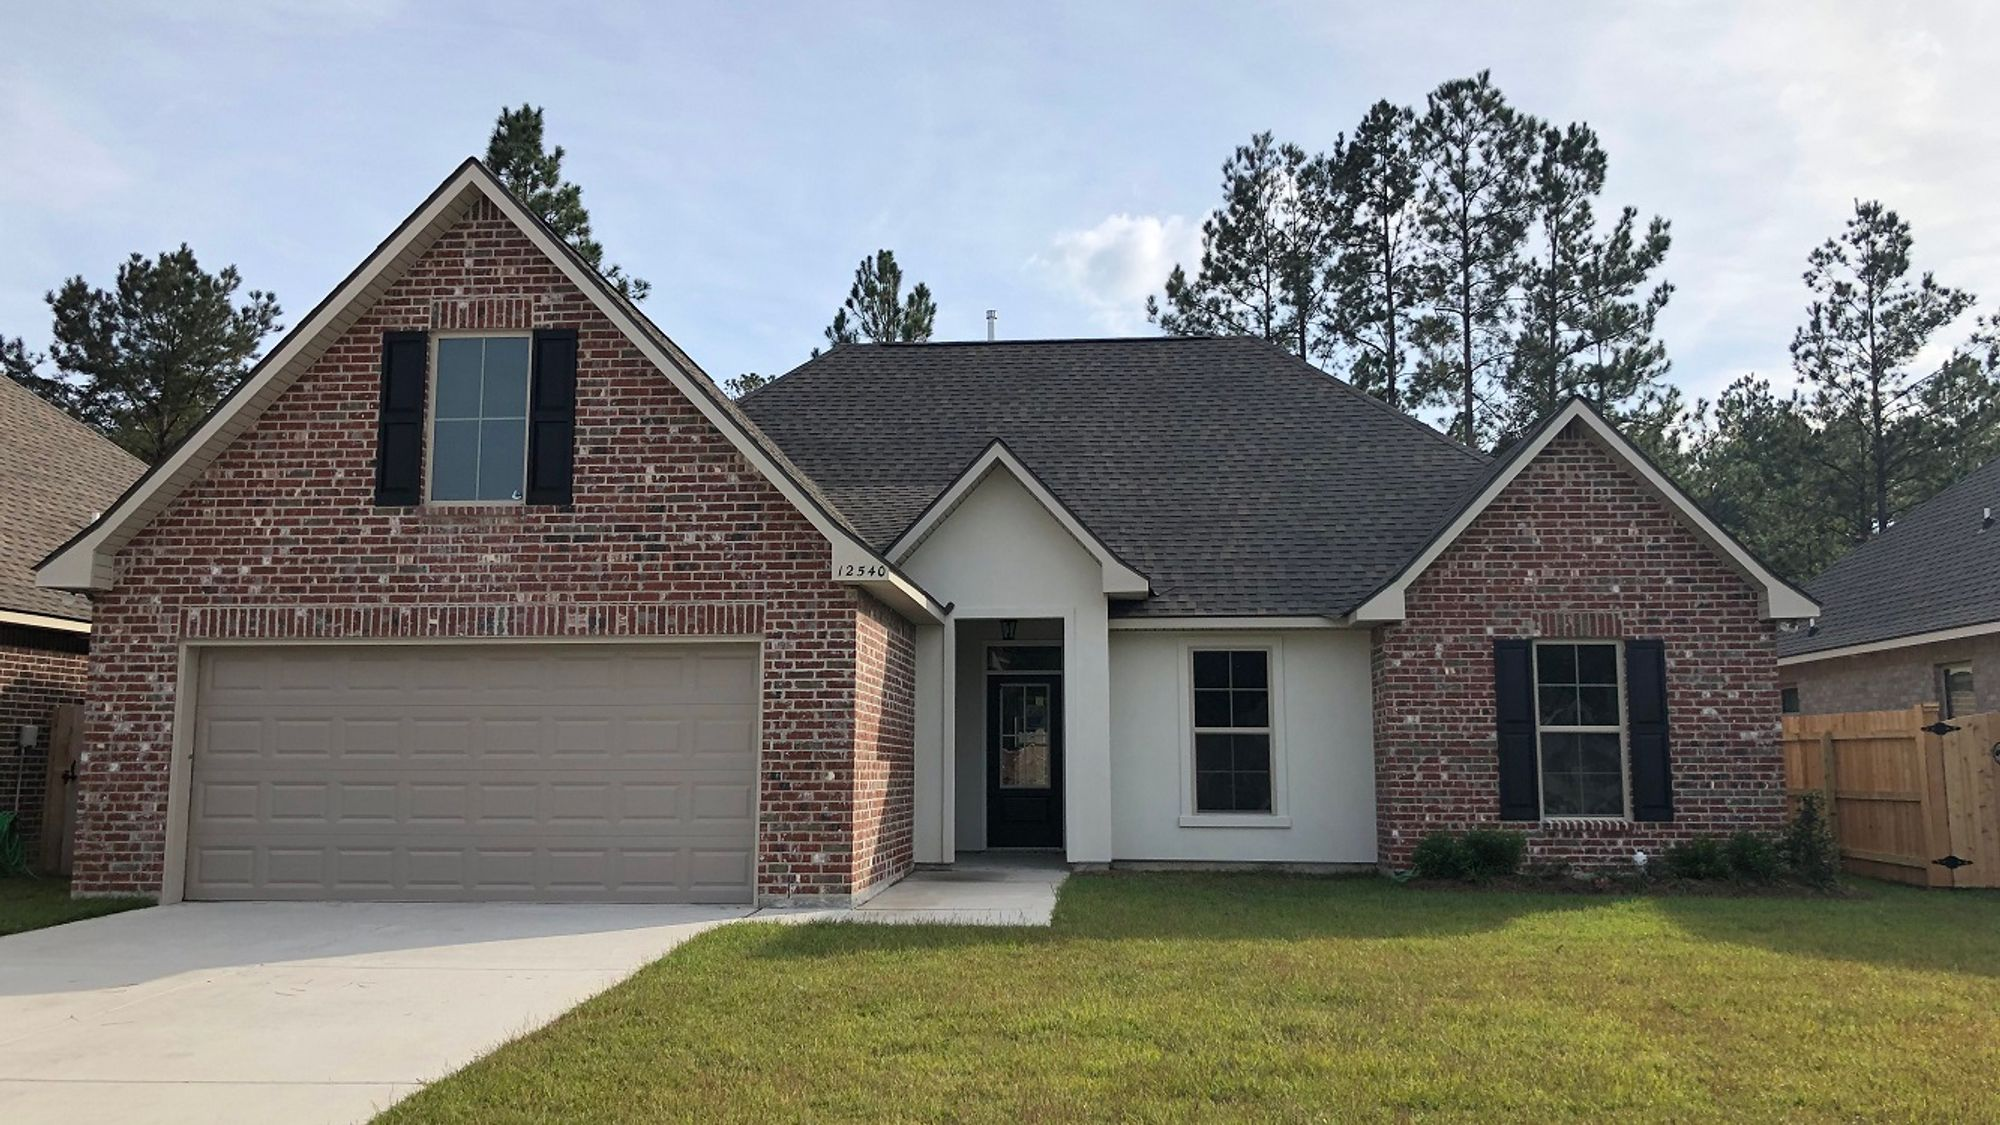 Front View - Ramsey IV B - Goodbee Square Community - DSLD Homes Covington